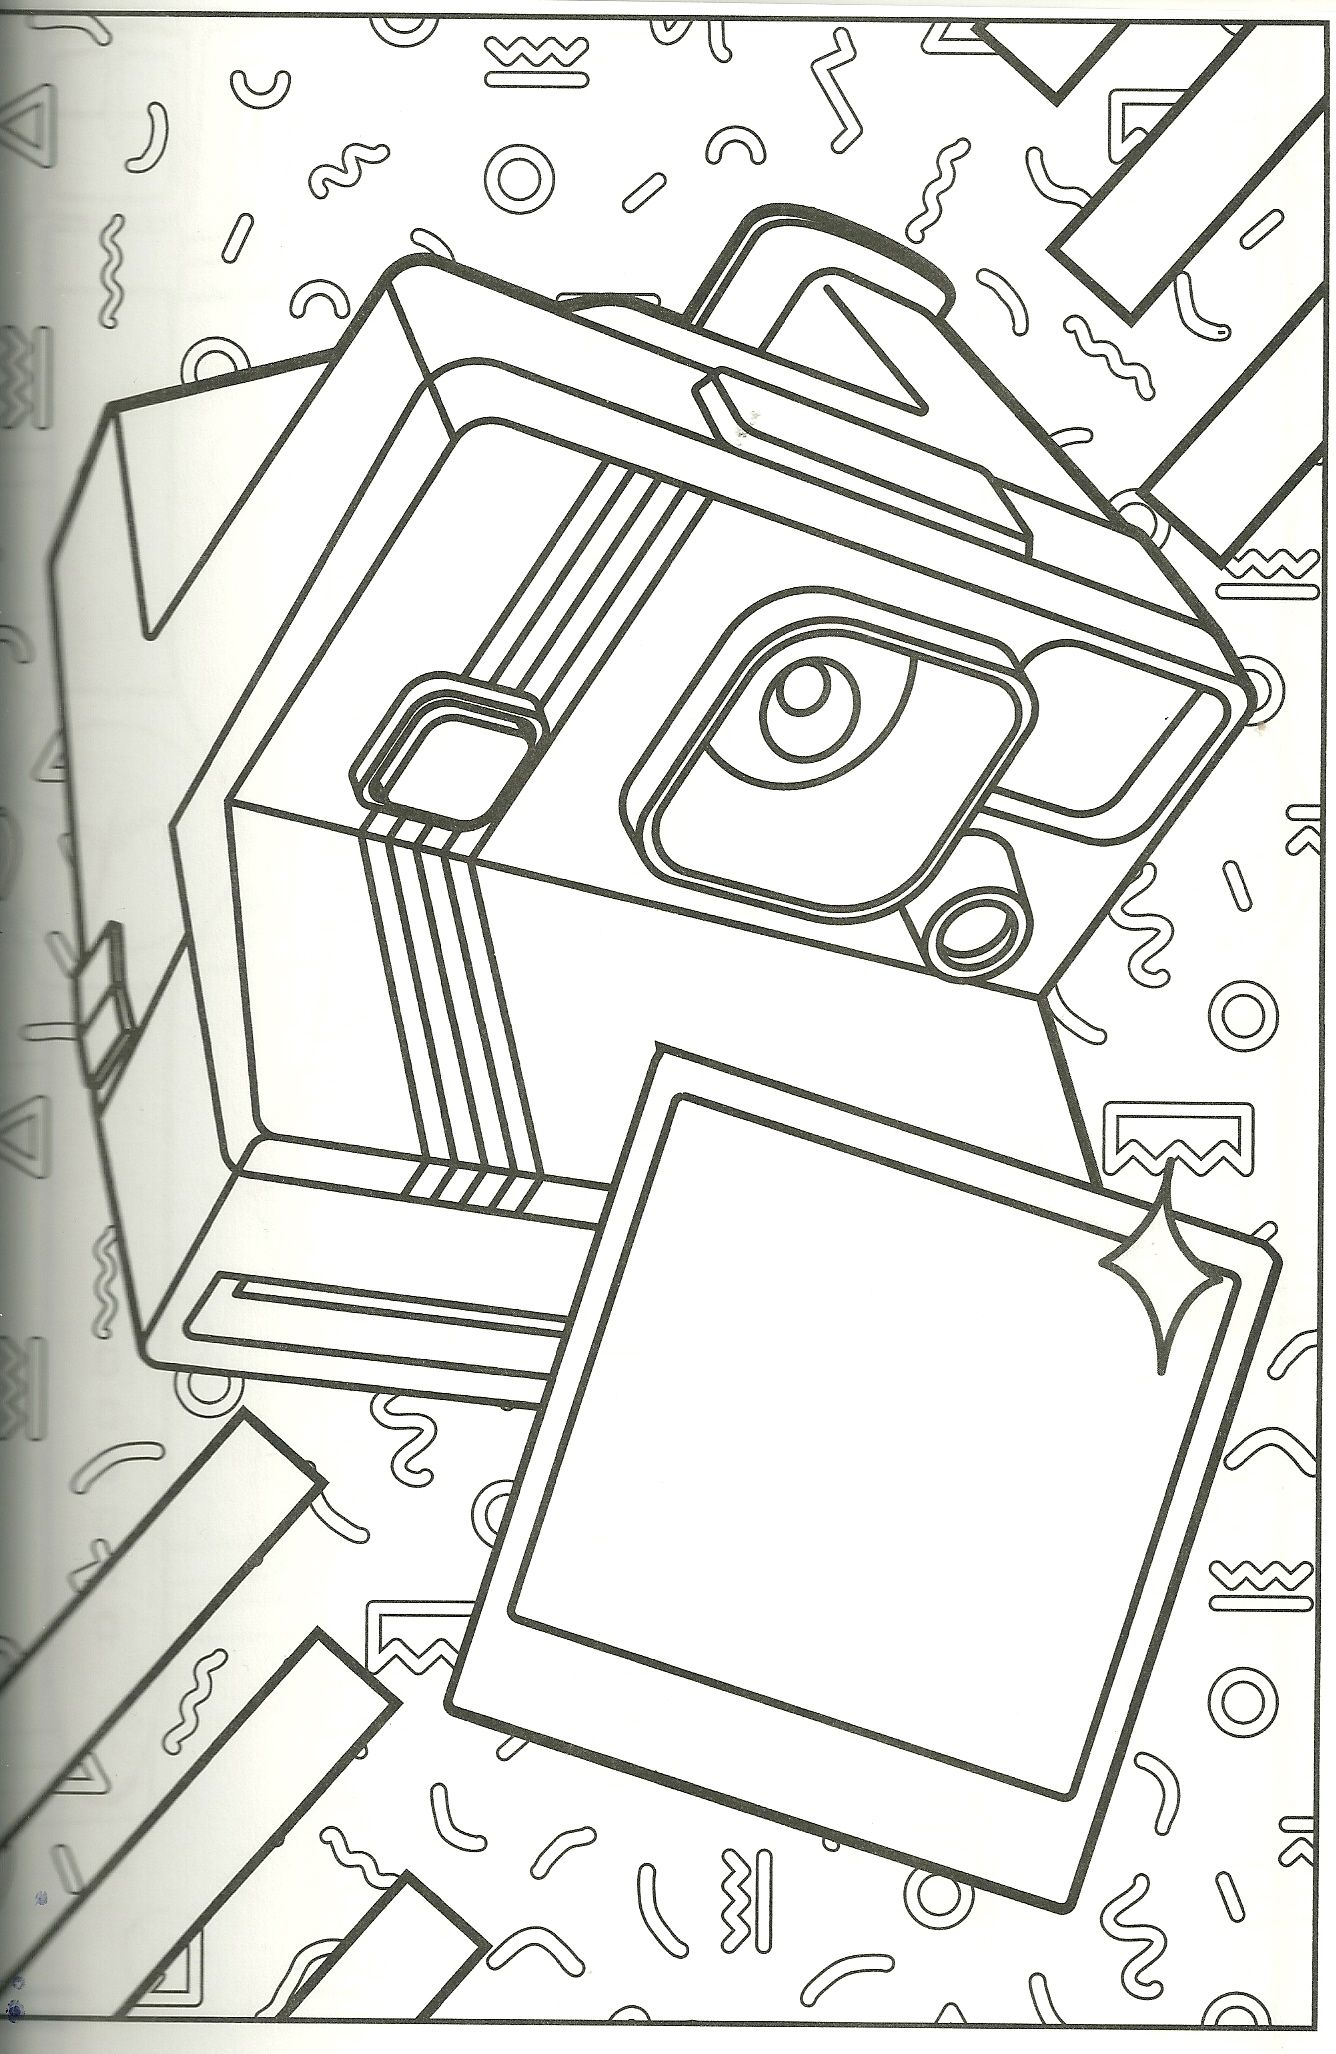 Polaroid coloring page. I have one of these cameras I use often